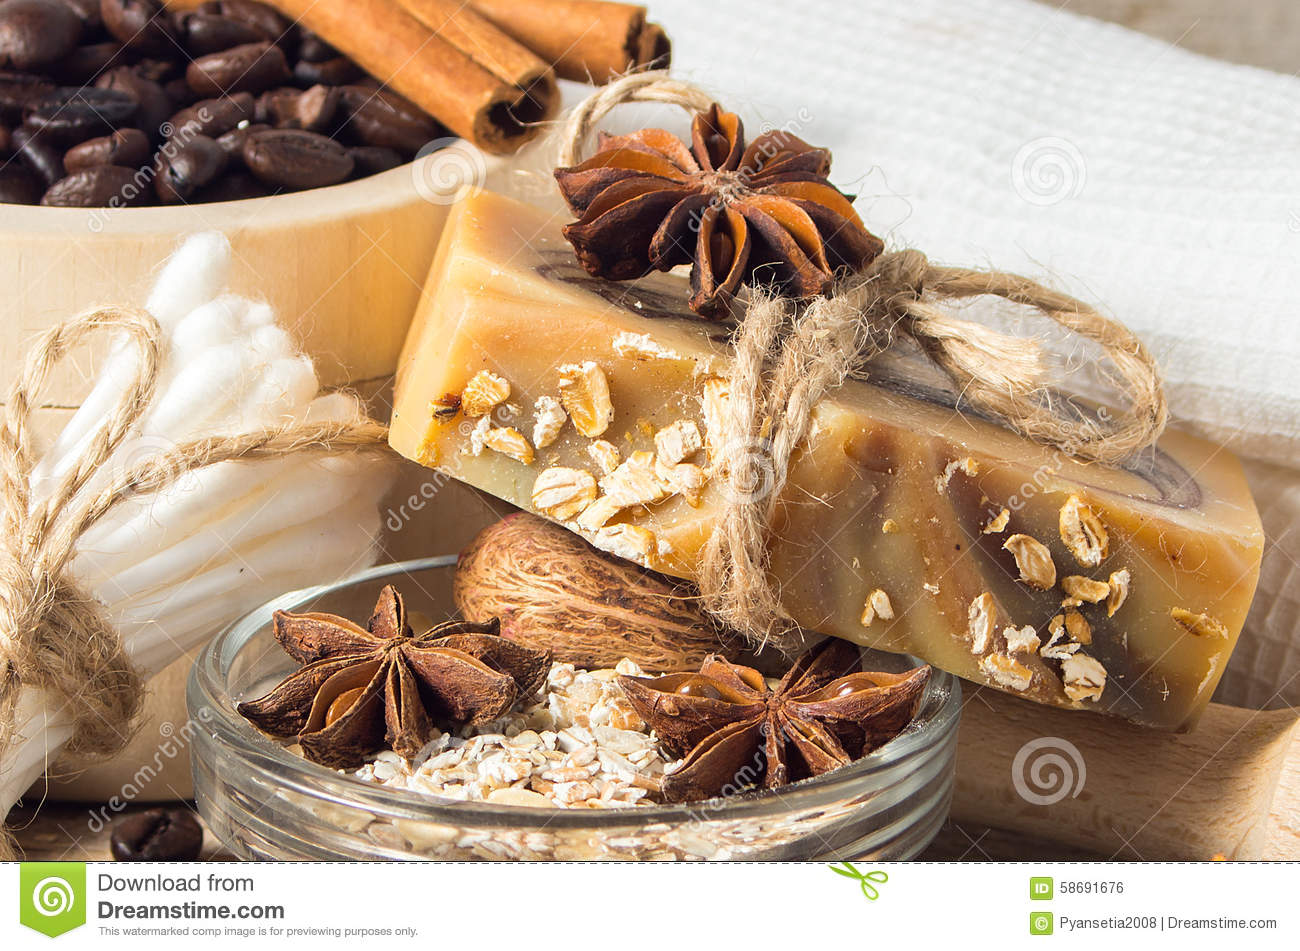 Handmade soap with coffee beans and spices on a wooden backgroun